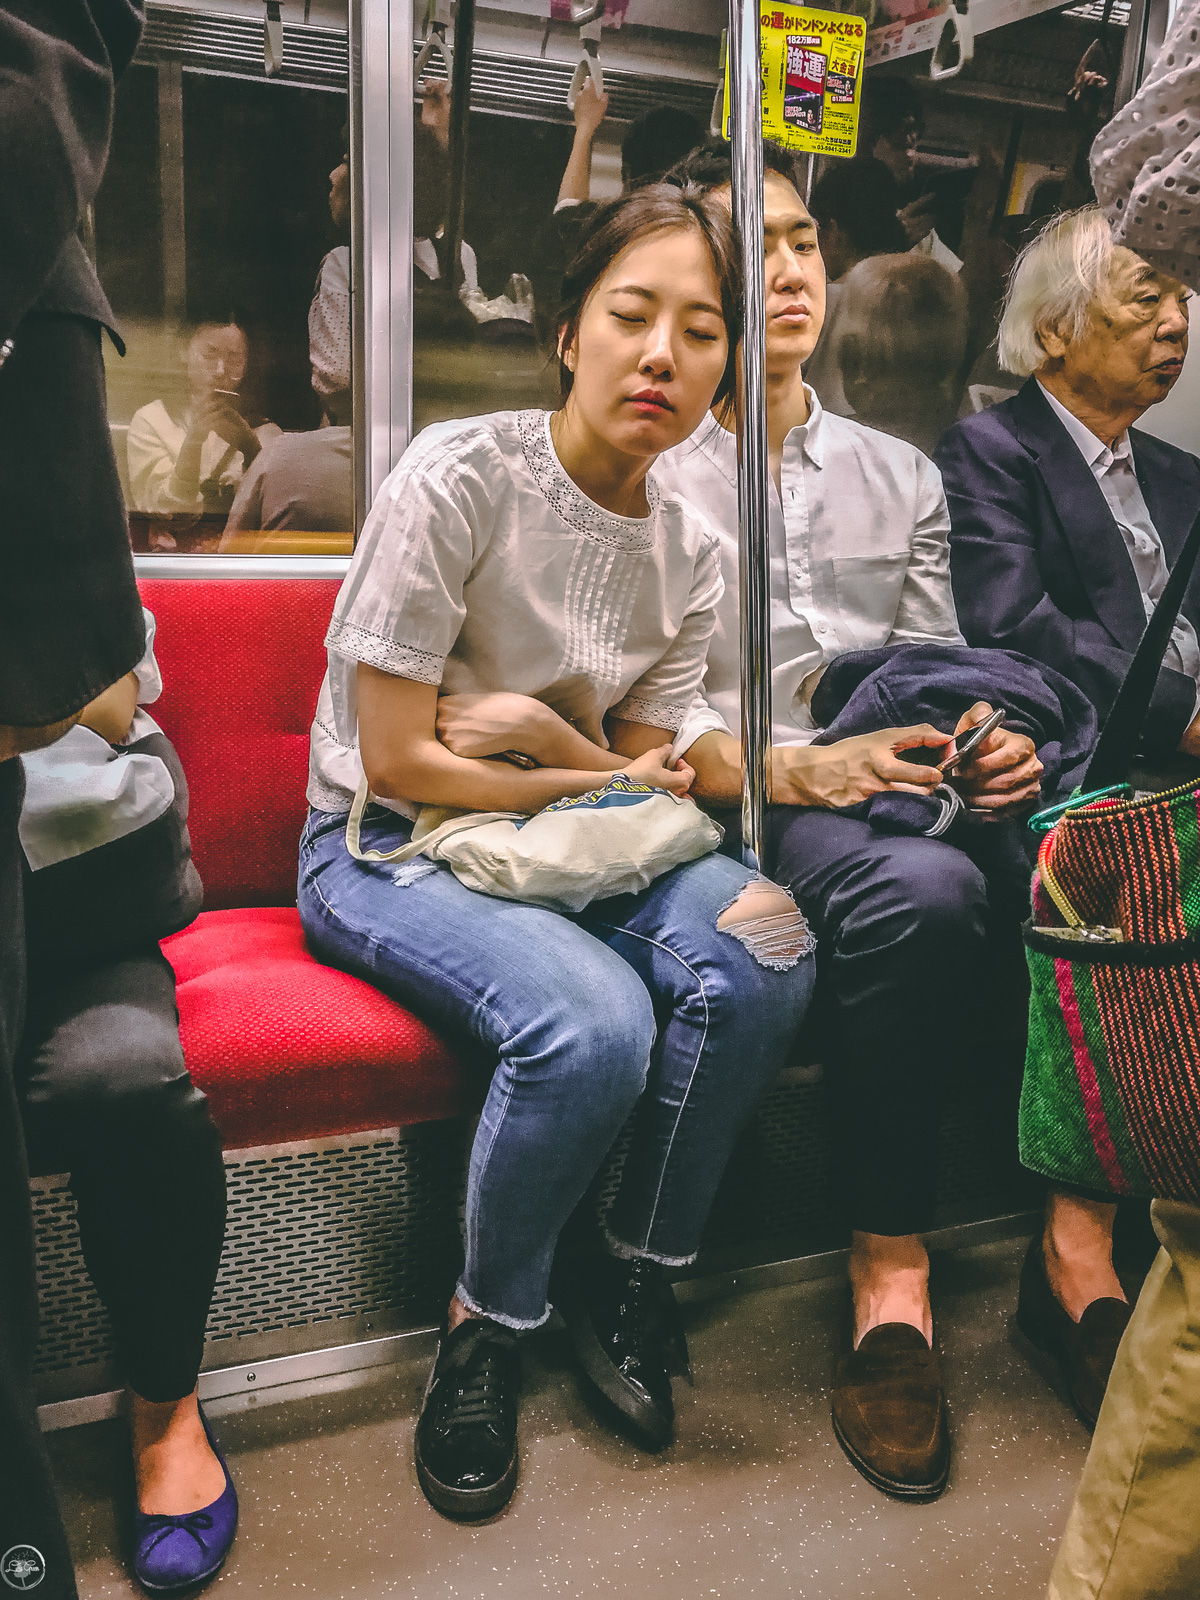 The Sleeping people of Tokyo